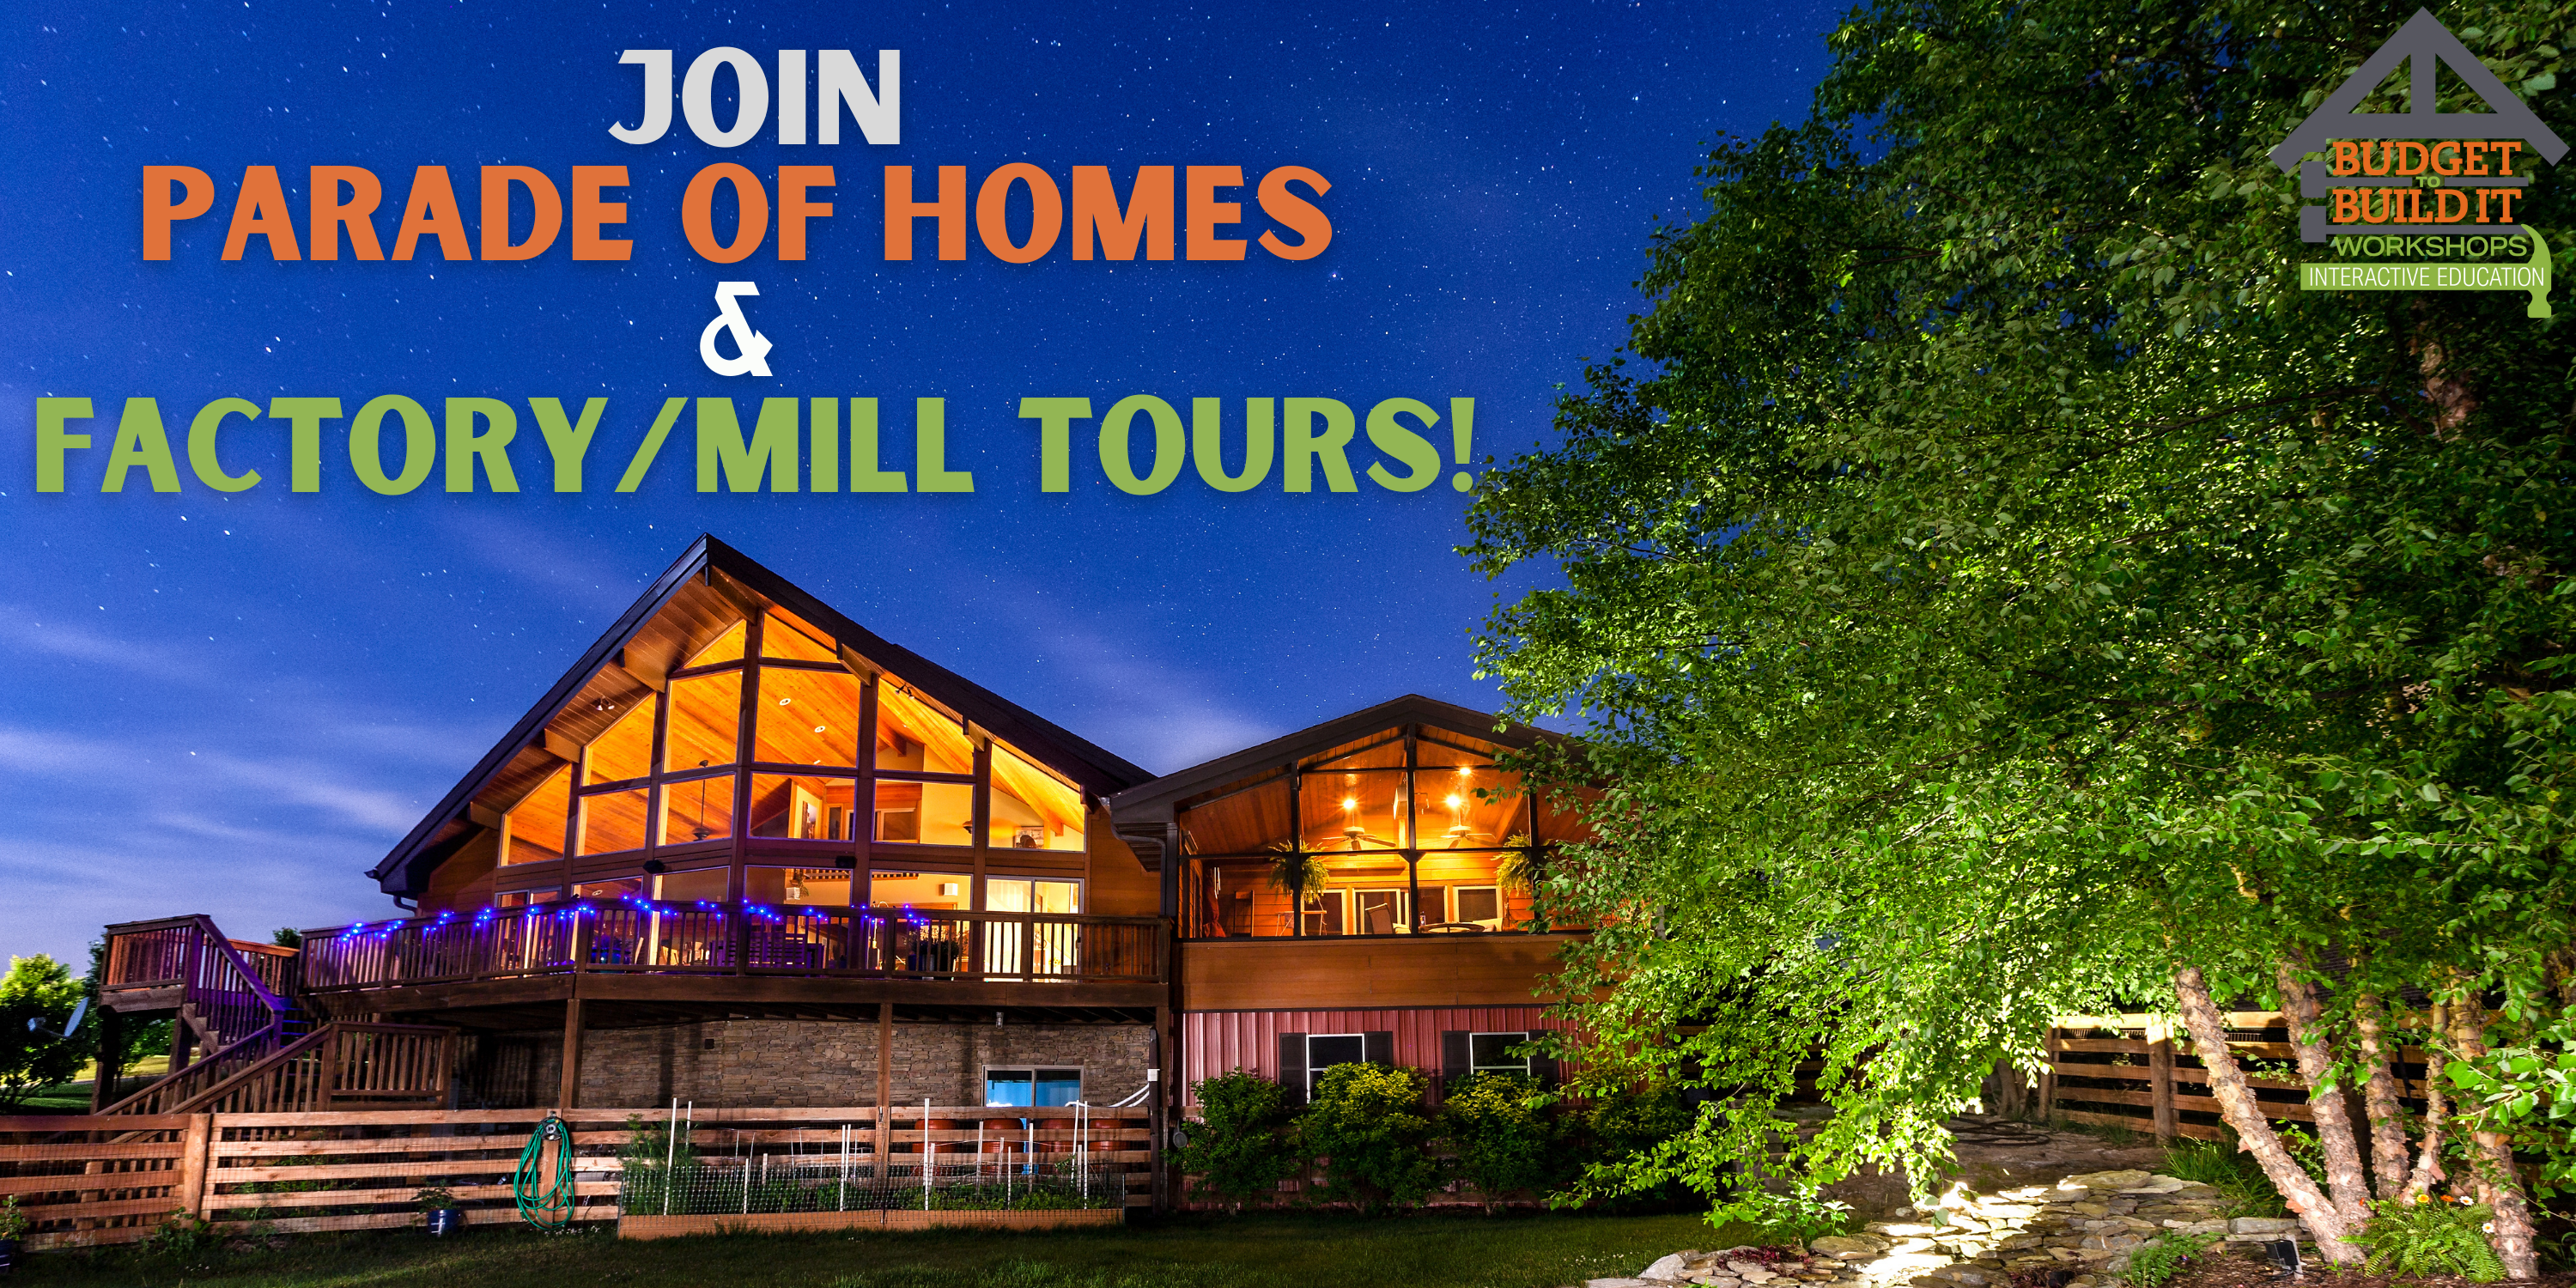 Factory/Mill Tours | Parade of Homes | Budget to Build It Workshops | Free Admission | 2021